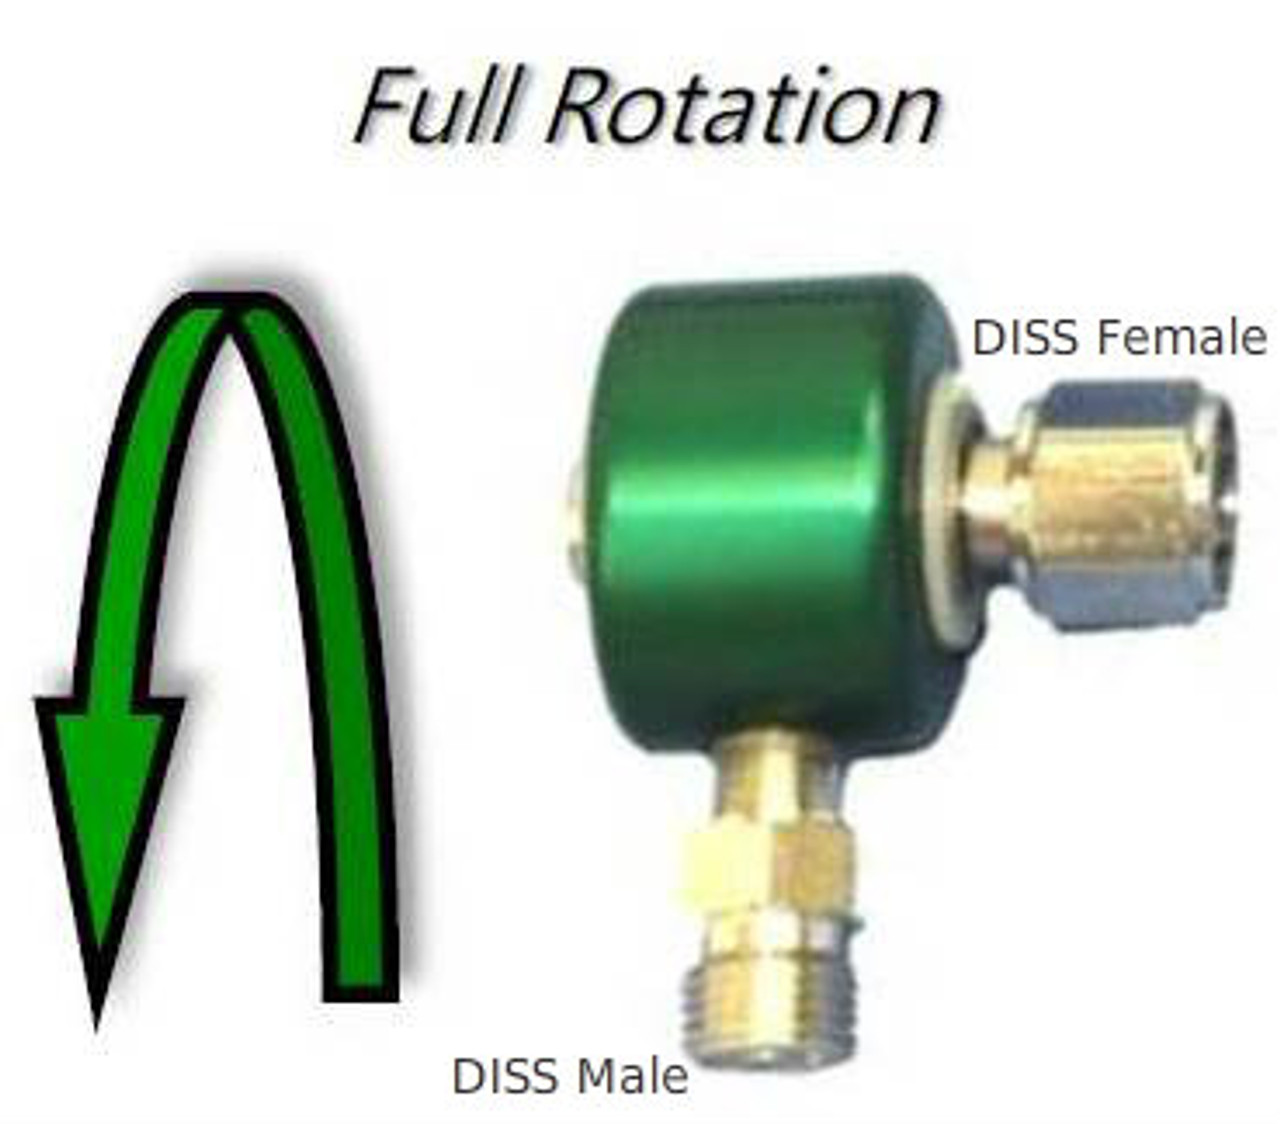 90 Degree Swivel Adapter with DISS fittings